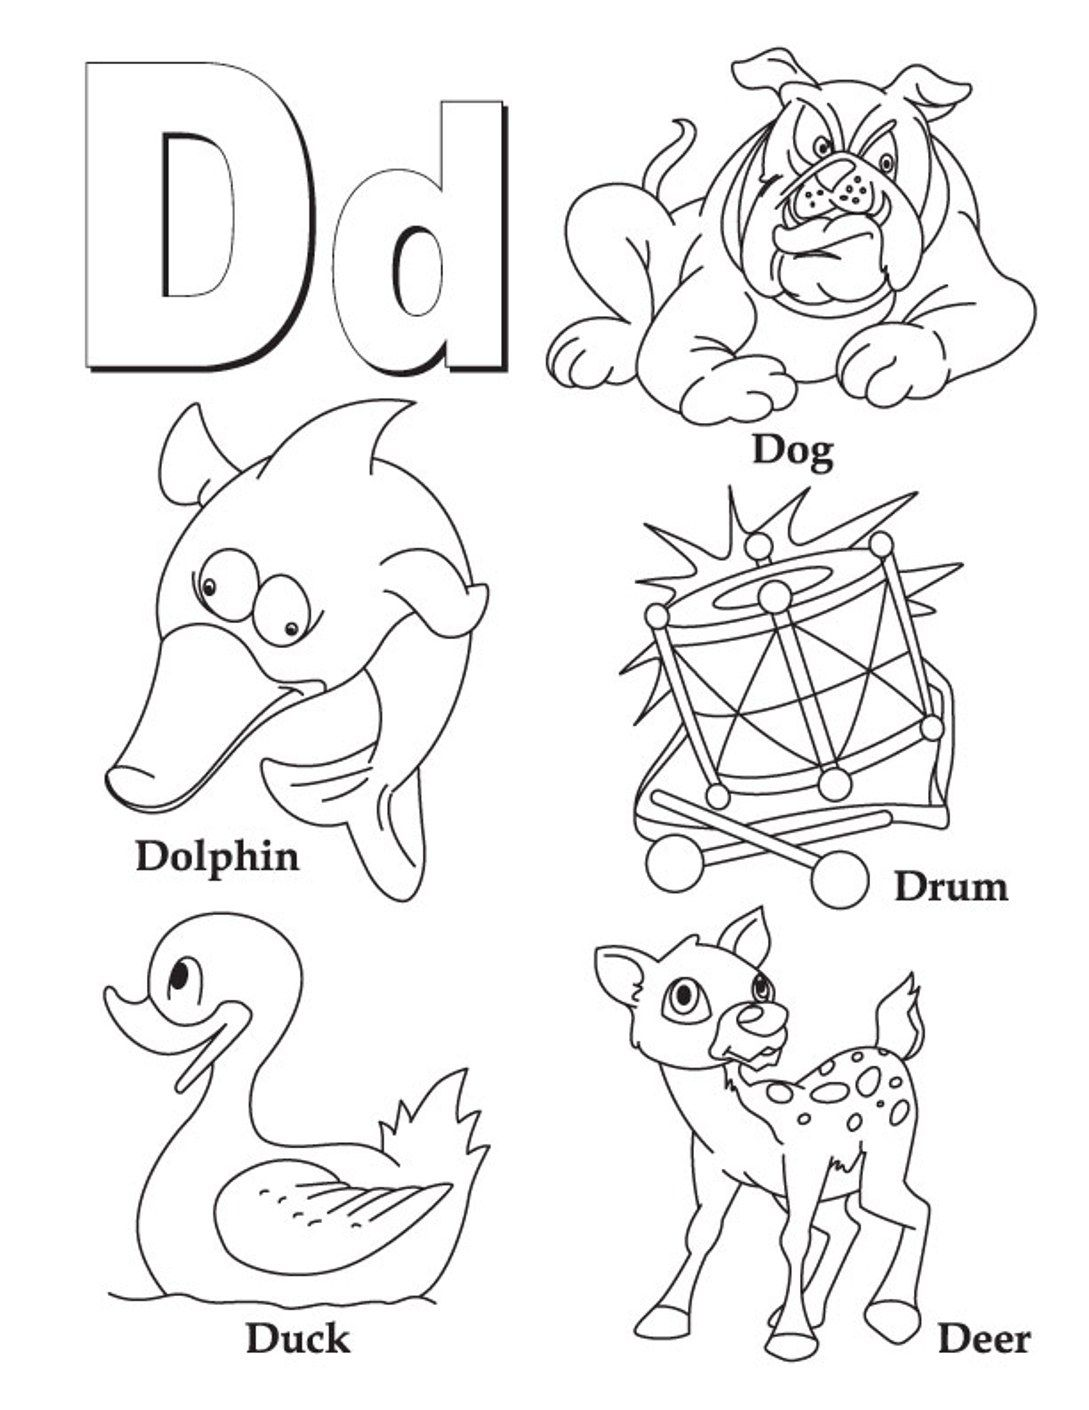 alphabet coloring d words printable alphabet coloring pages dalphabet coloring d words printable alphabet